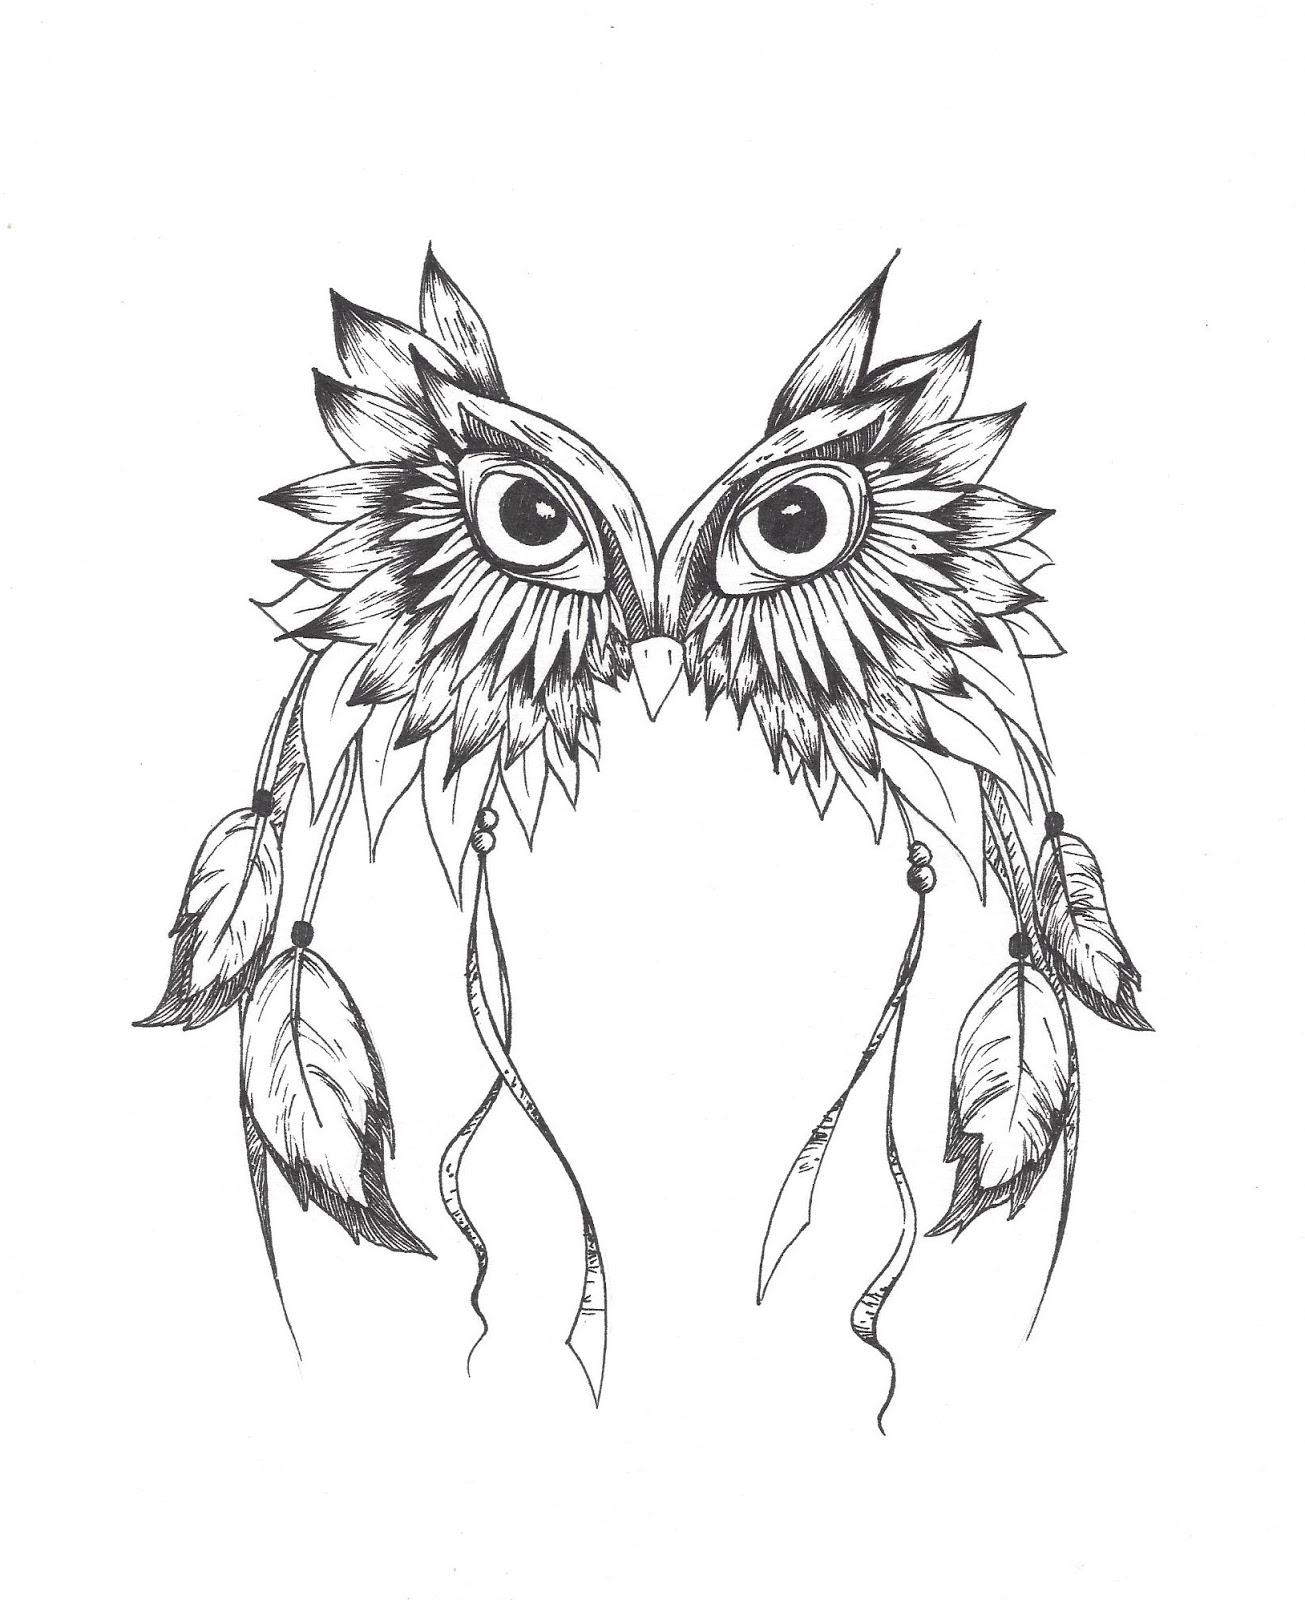 Owl dreamcatcher drawing - photo#2